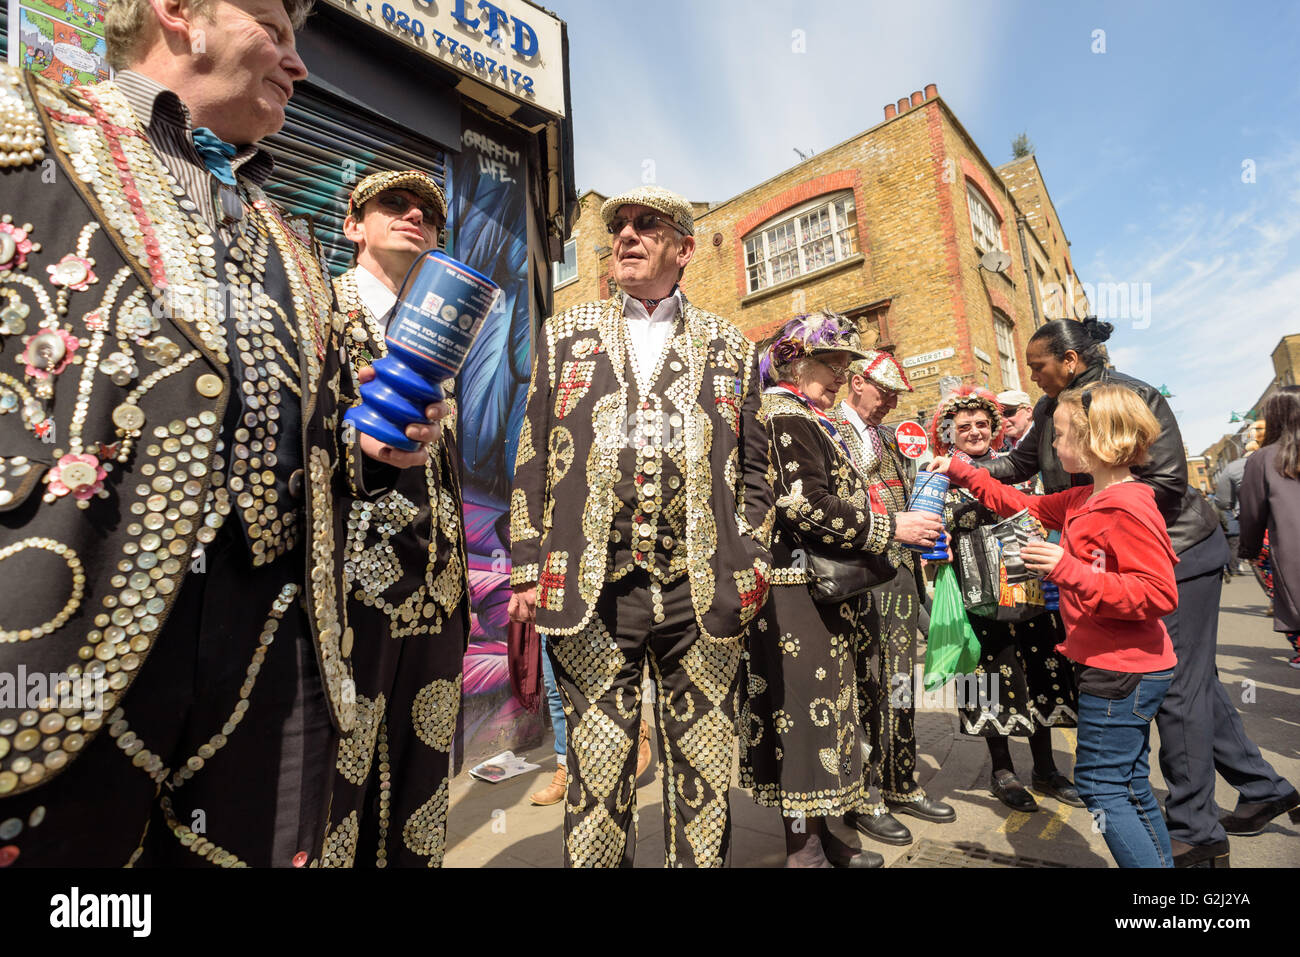 Traditional Pearly Kings and Queens in full costume collecting donations in London on Brick Lane Shoreditch - Stock Image